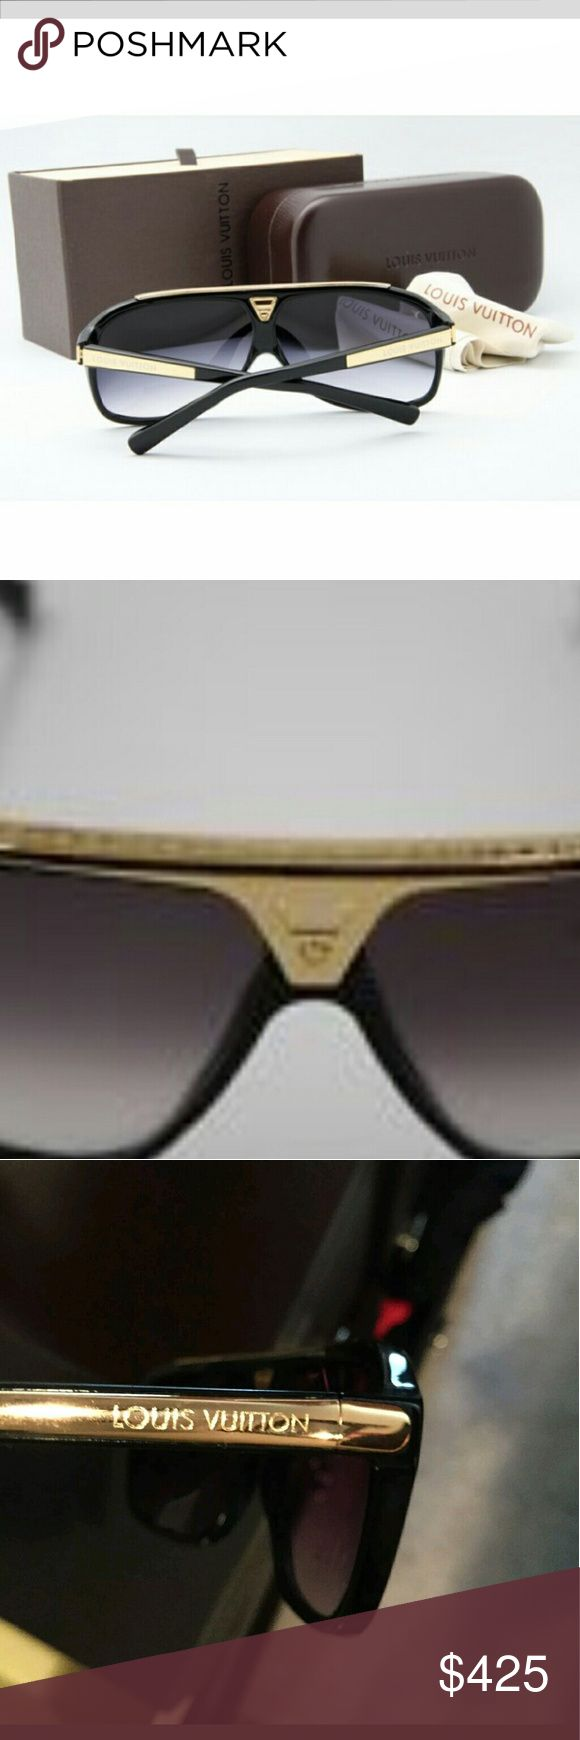 Louis Vuitton Evidence Sunglasses Authentic Louis Vuitton black ad gold Evidence sunglasses. Barely used, comes with case and box. Louis Vuitton Accessories Sunglasses